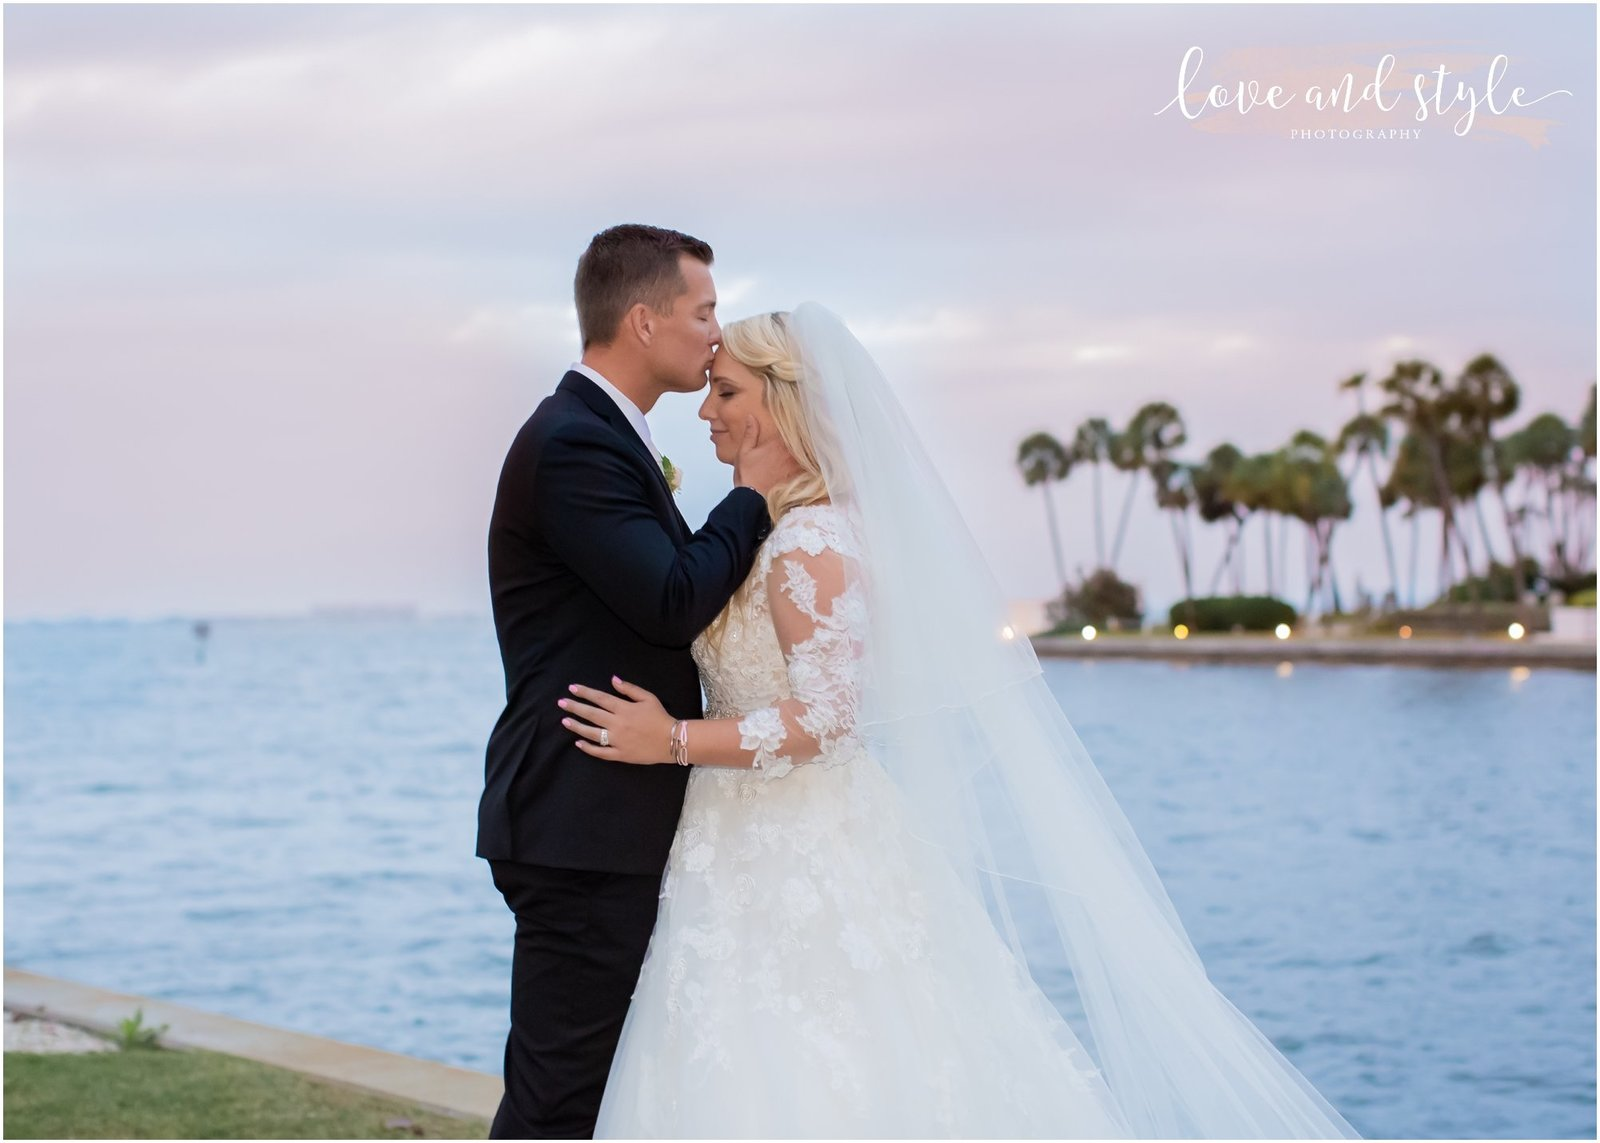 Bride and Groom embracing at the water's edge at The Ritz Carlton, Sarasota